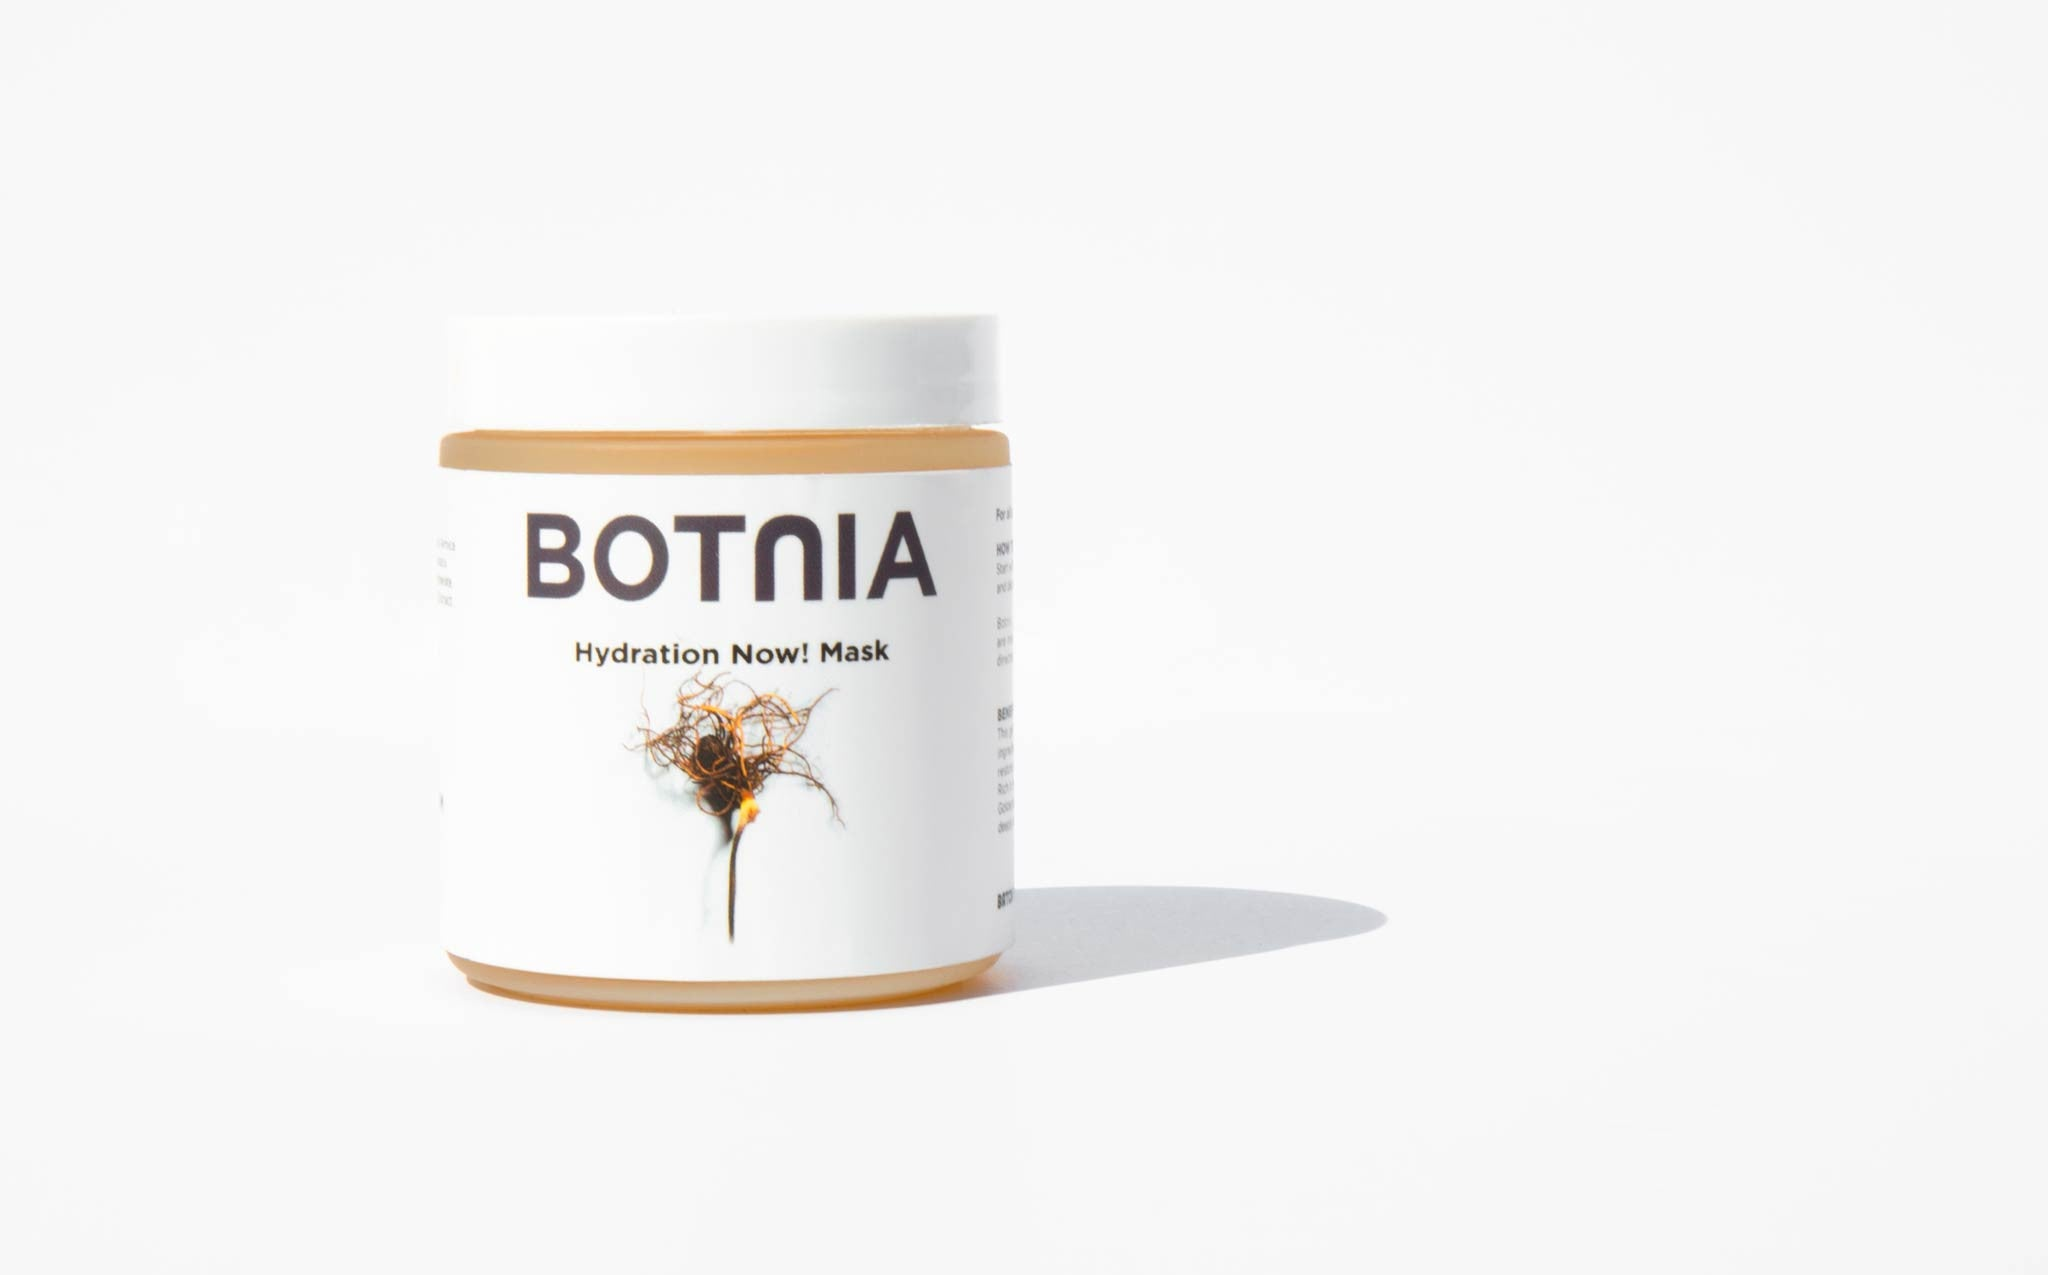 Botnia Hydration Now! Mask